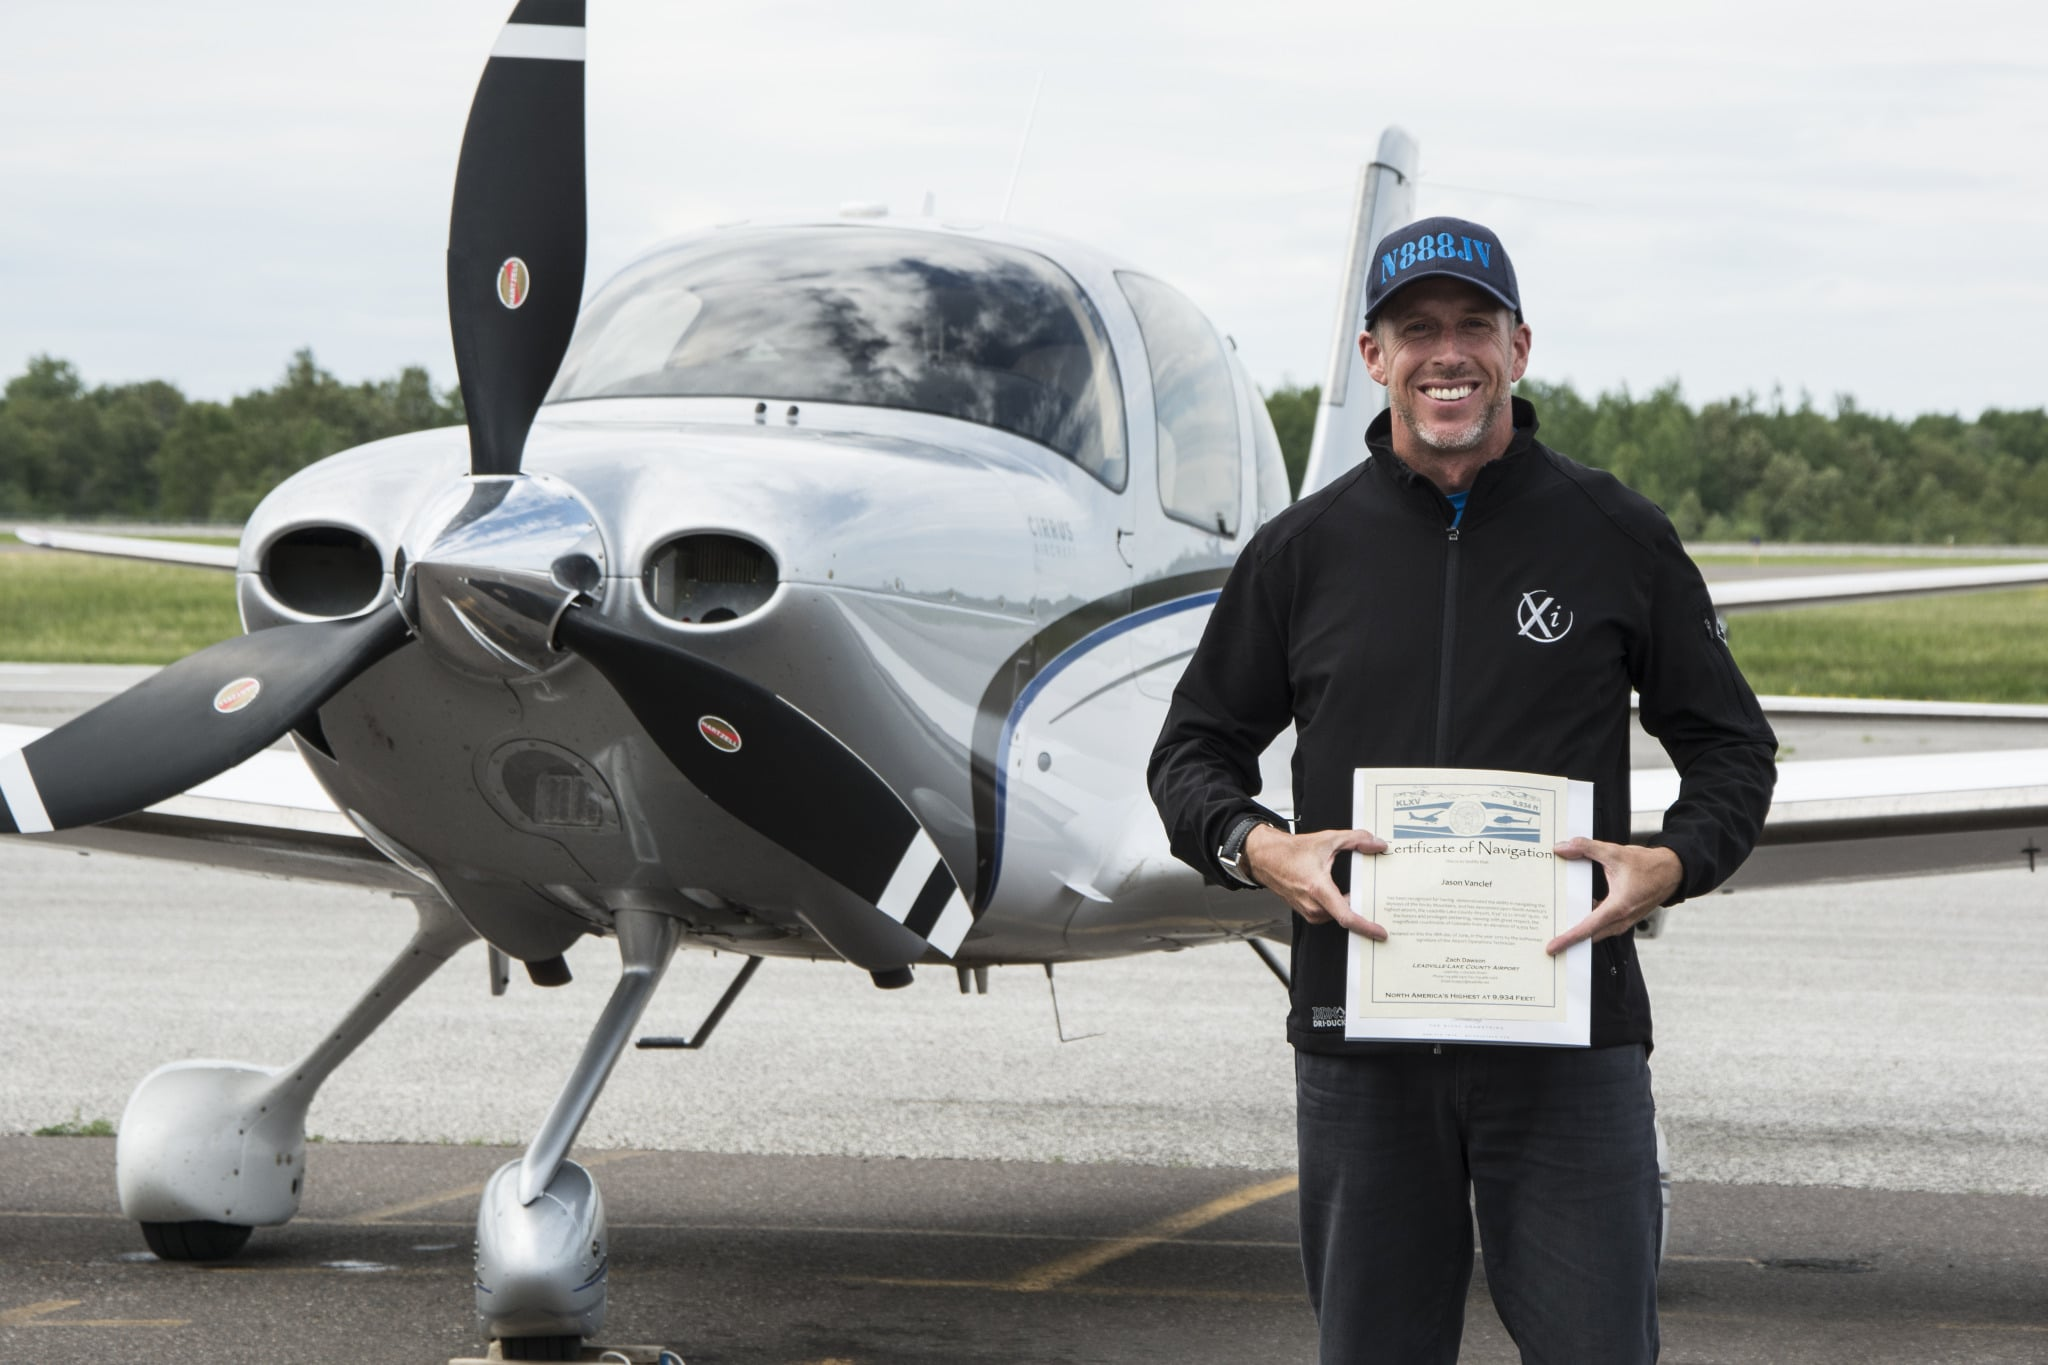 Jason Sought a Better Way to Travel – Cirrus Answered